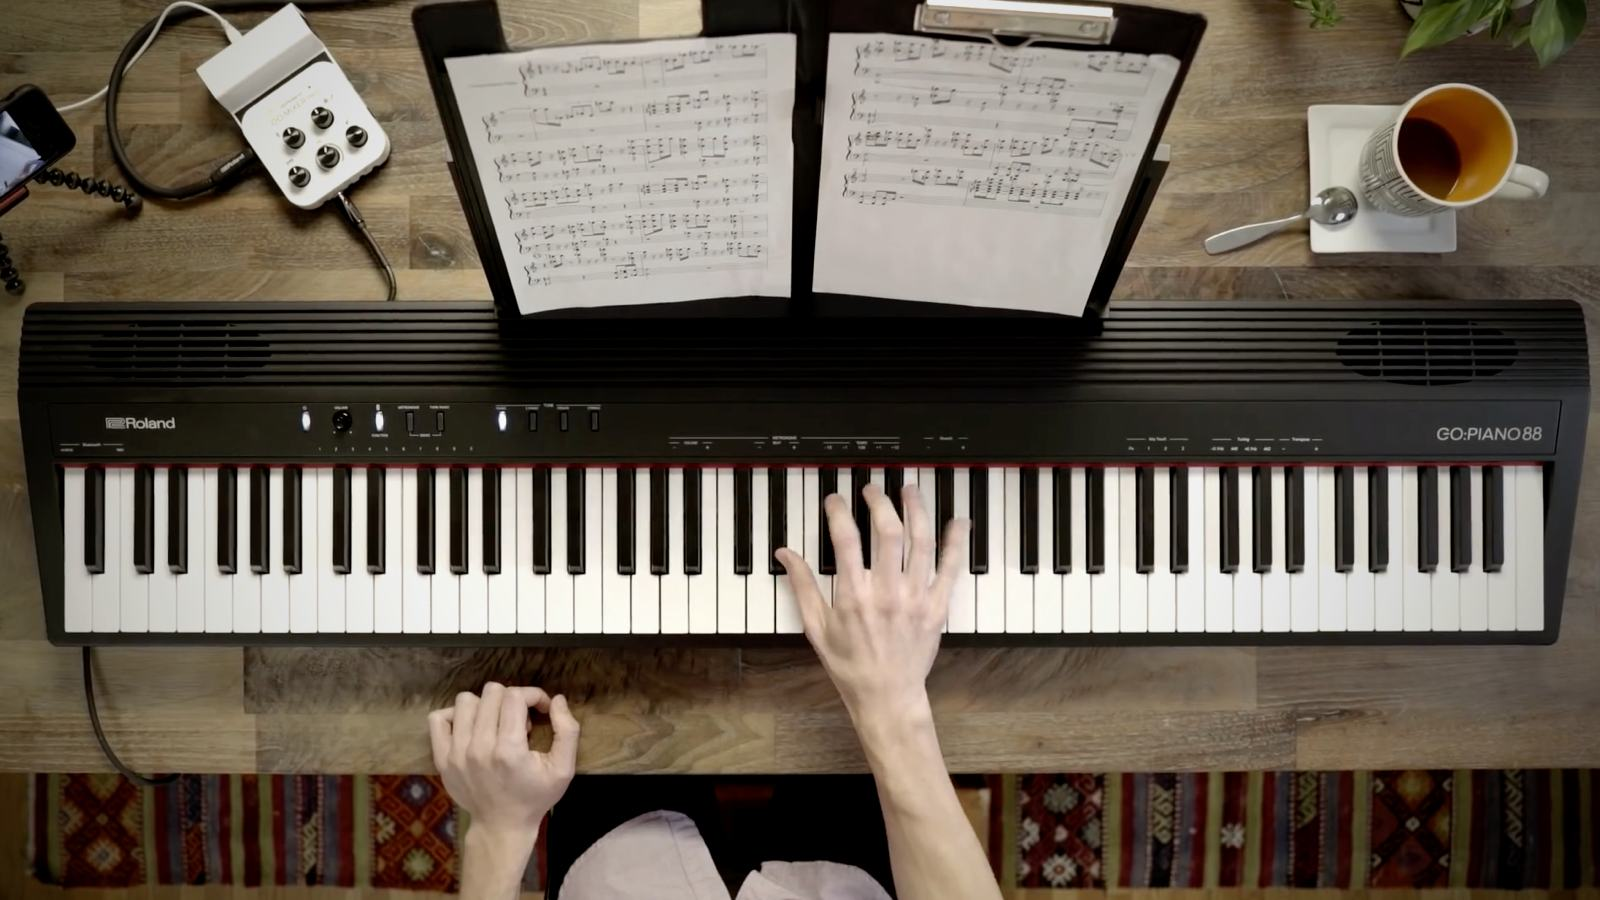 Songwriting mit Roland GO:PIANO 88